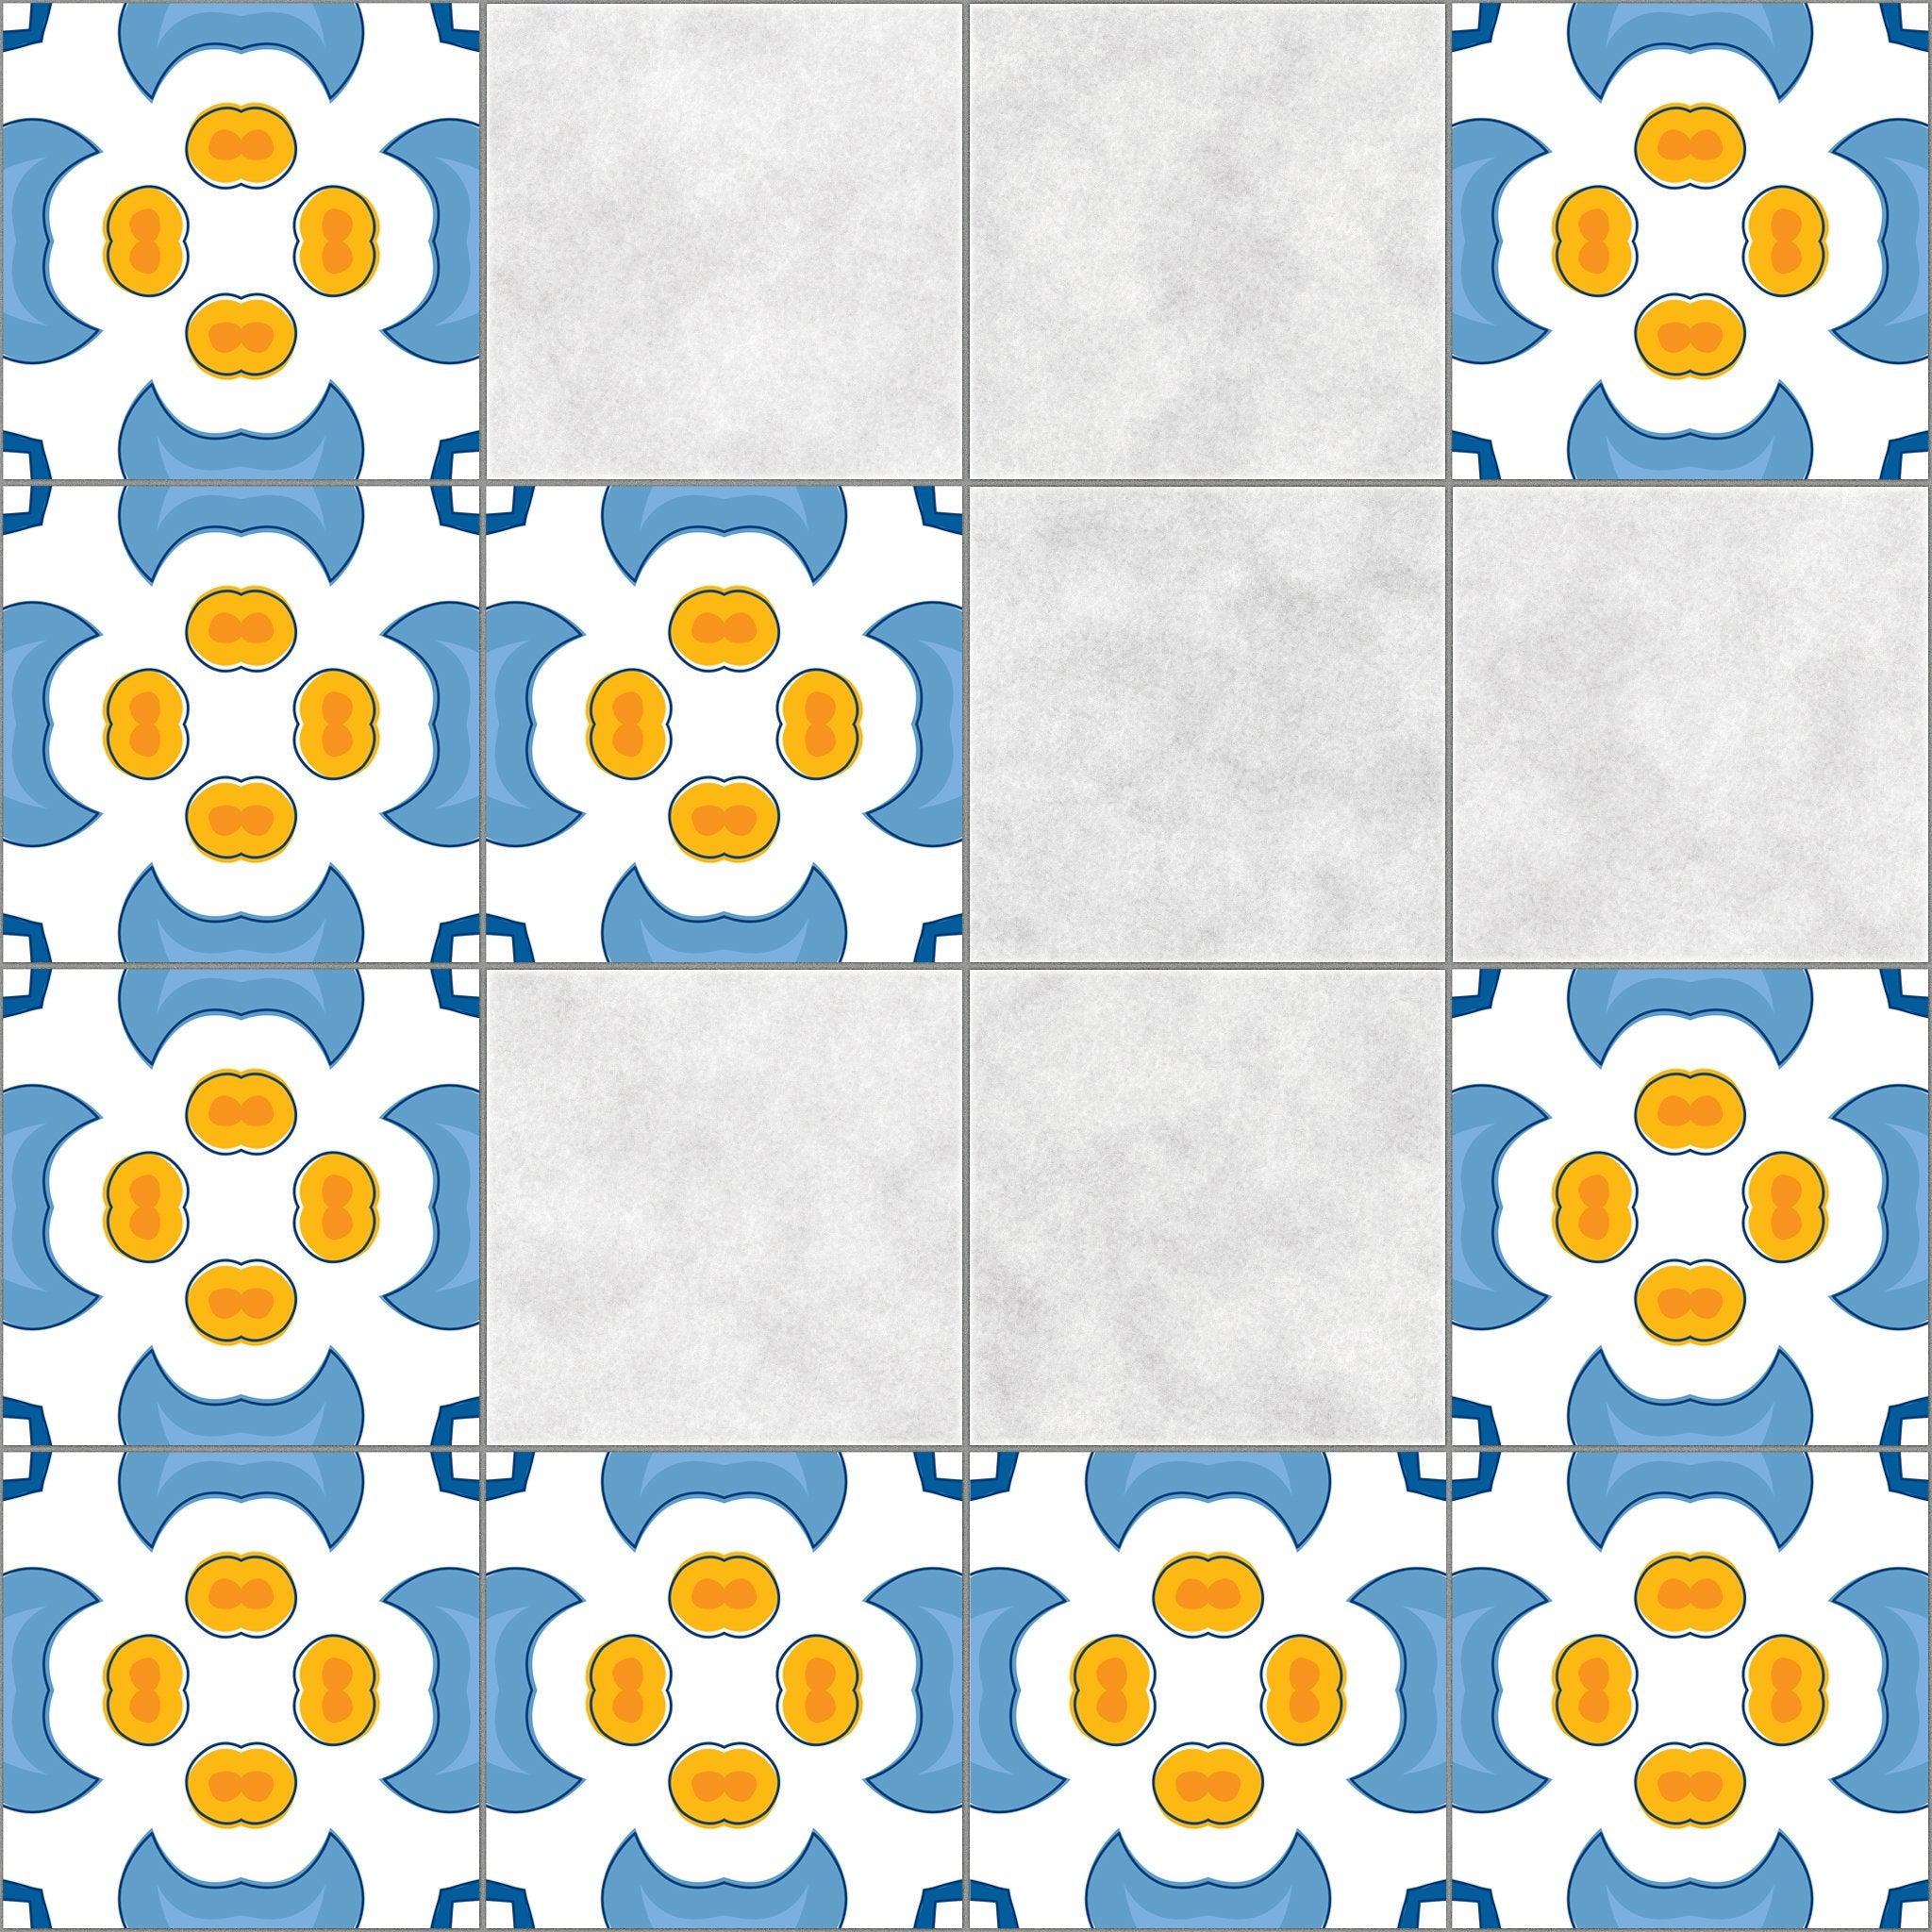 Tile stickers - KP081